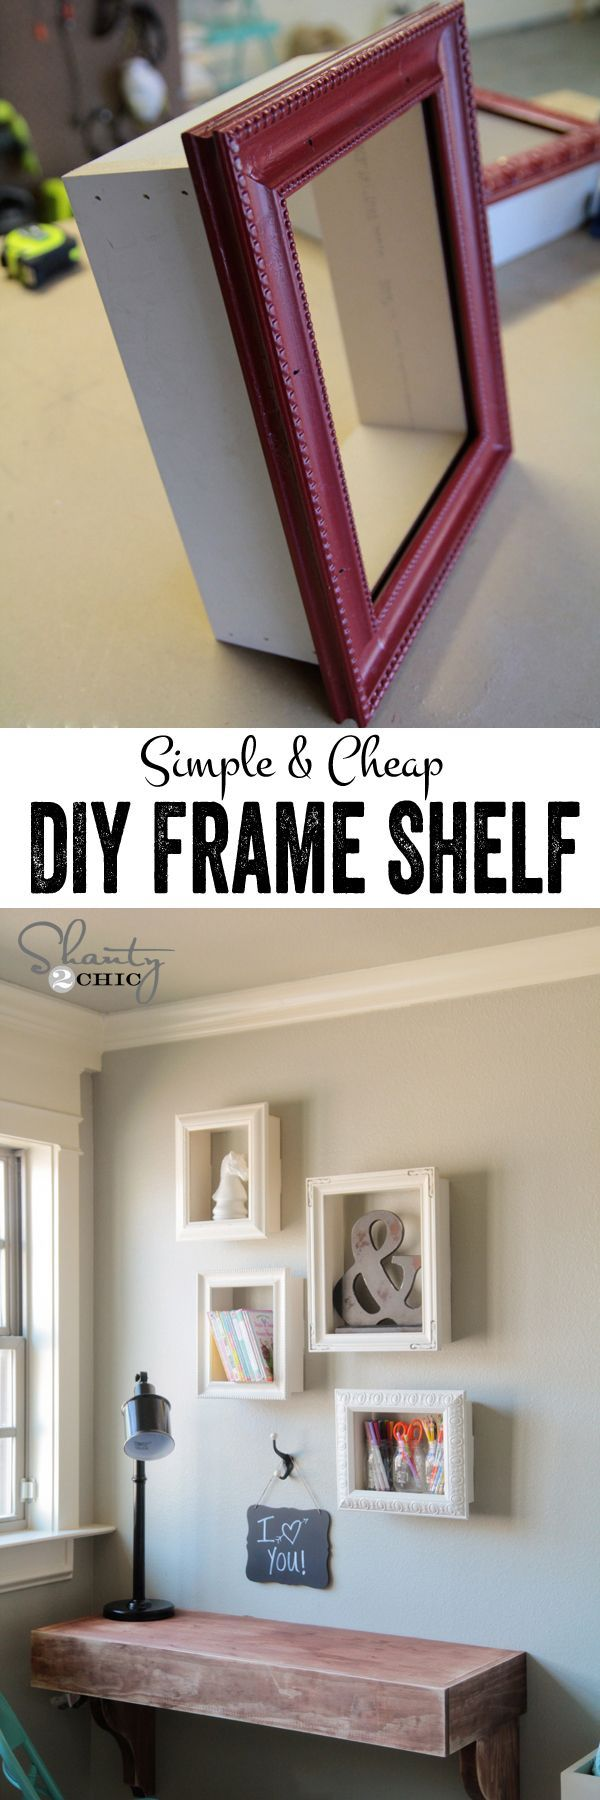 Simple and Cheap DIY Frame Shelf - An easy and affordable way for chic decor.